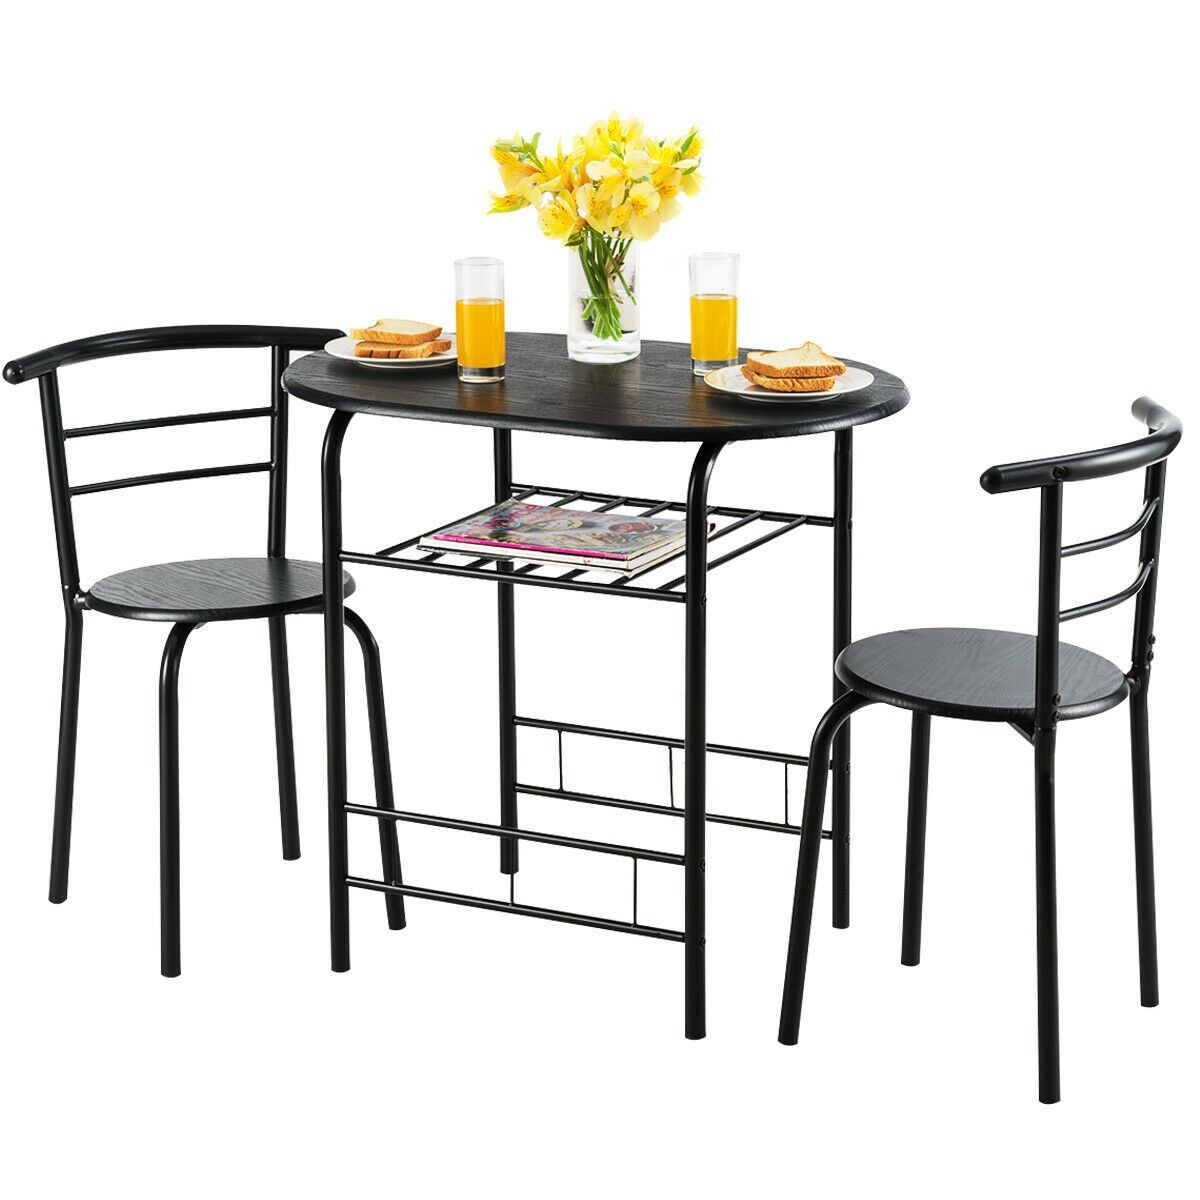 3 Pcs Home Kitchen Bistro Pub Dining Table 2 Chairs Set With Images Dining Table Setting 3 Piece Dining Set Home Kitchens